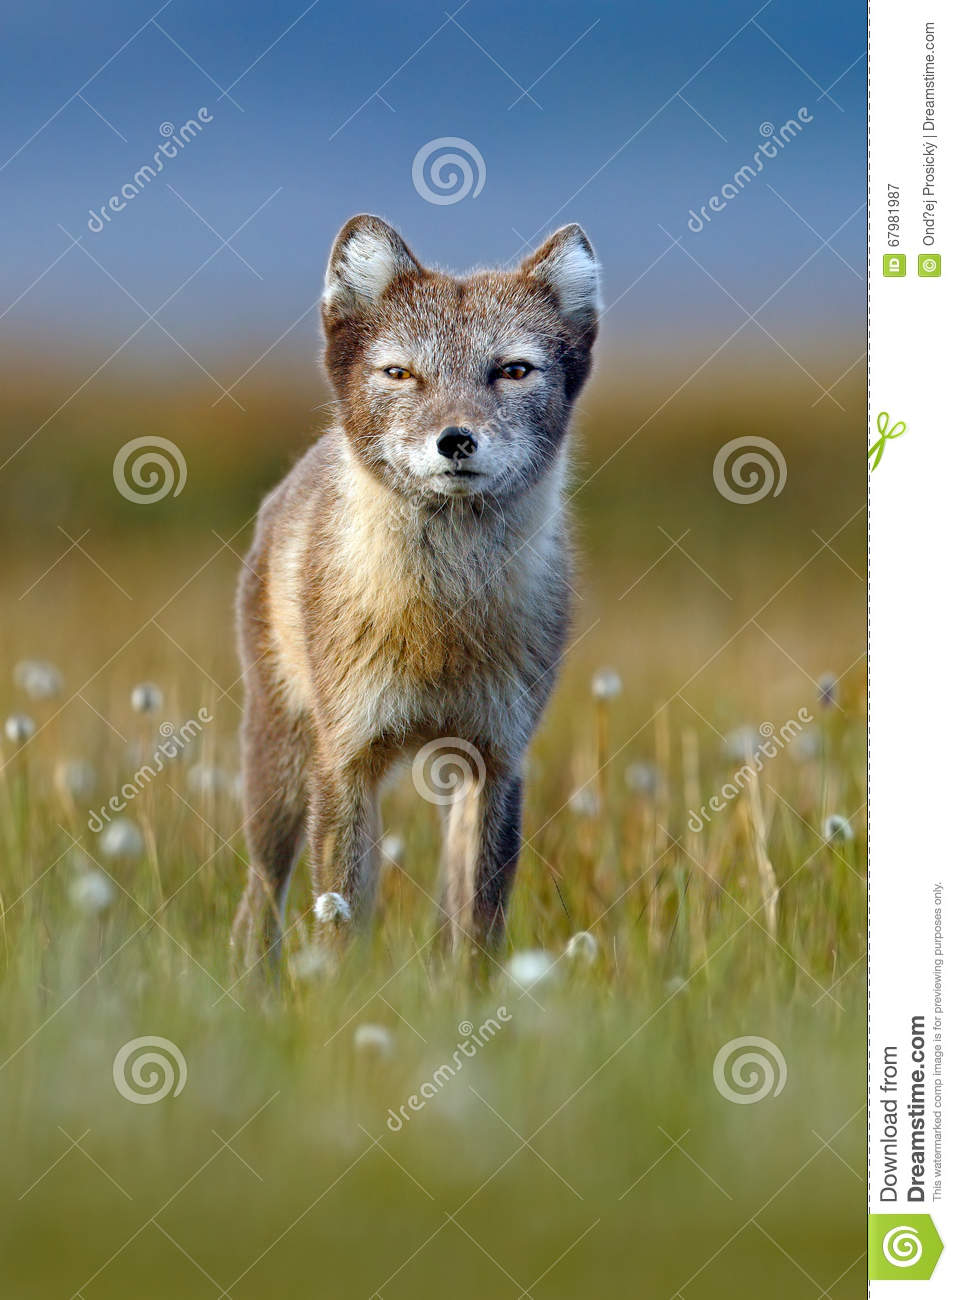 Arctic Fox, Vulpes lagopus, cute animal portrait in the nature habitat, grass meadow with flowers, Svalbard, Norway